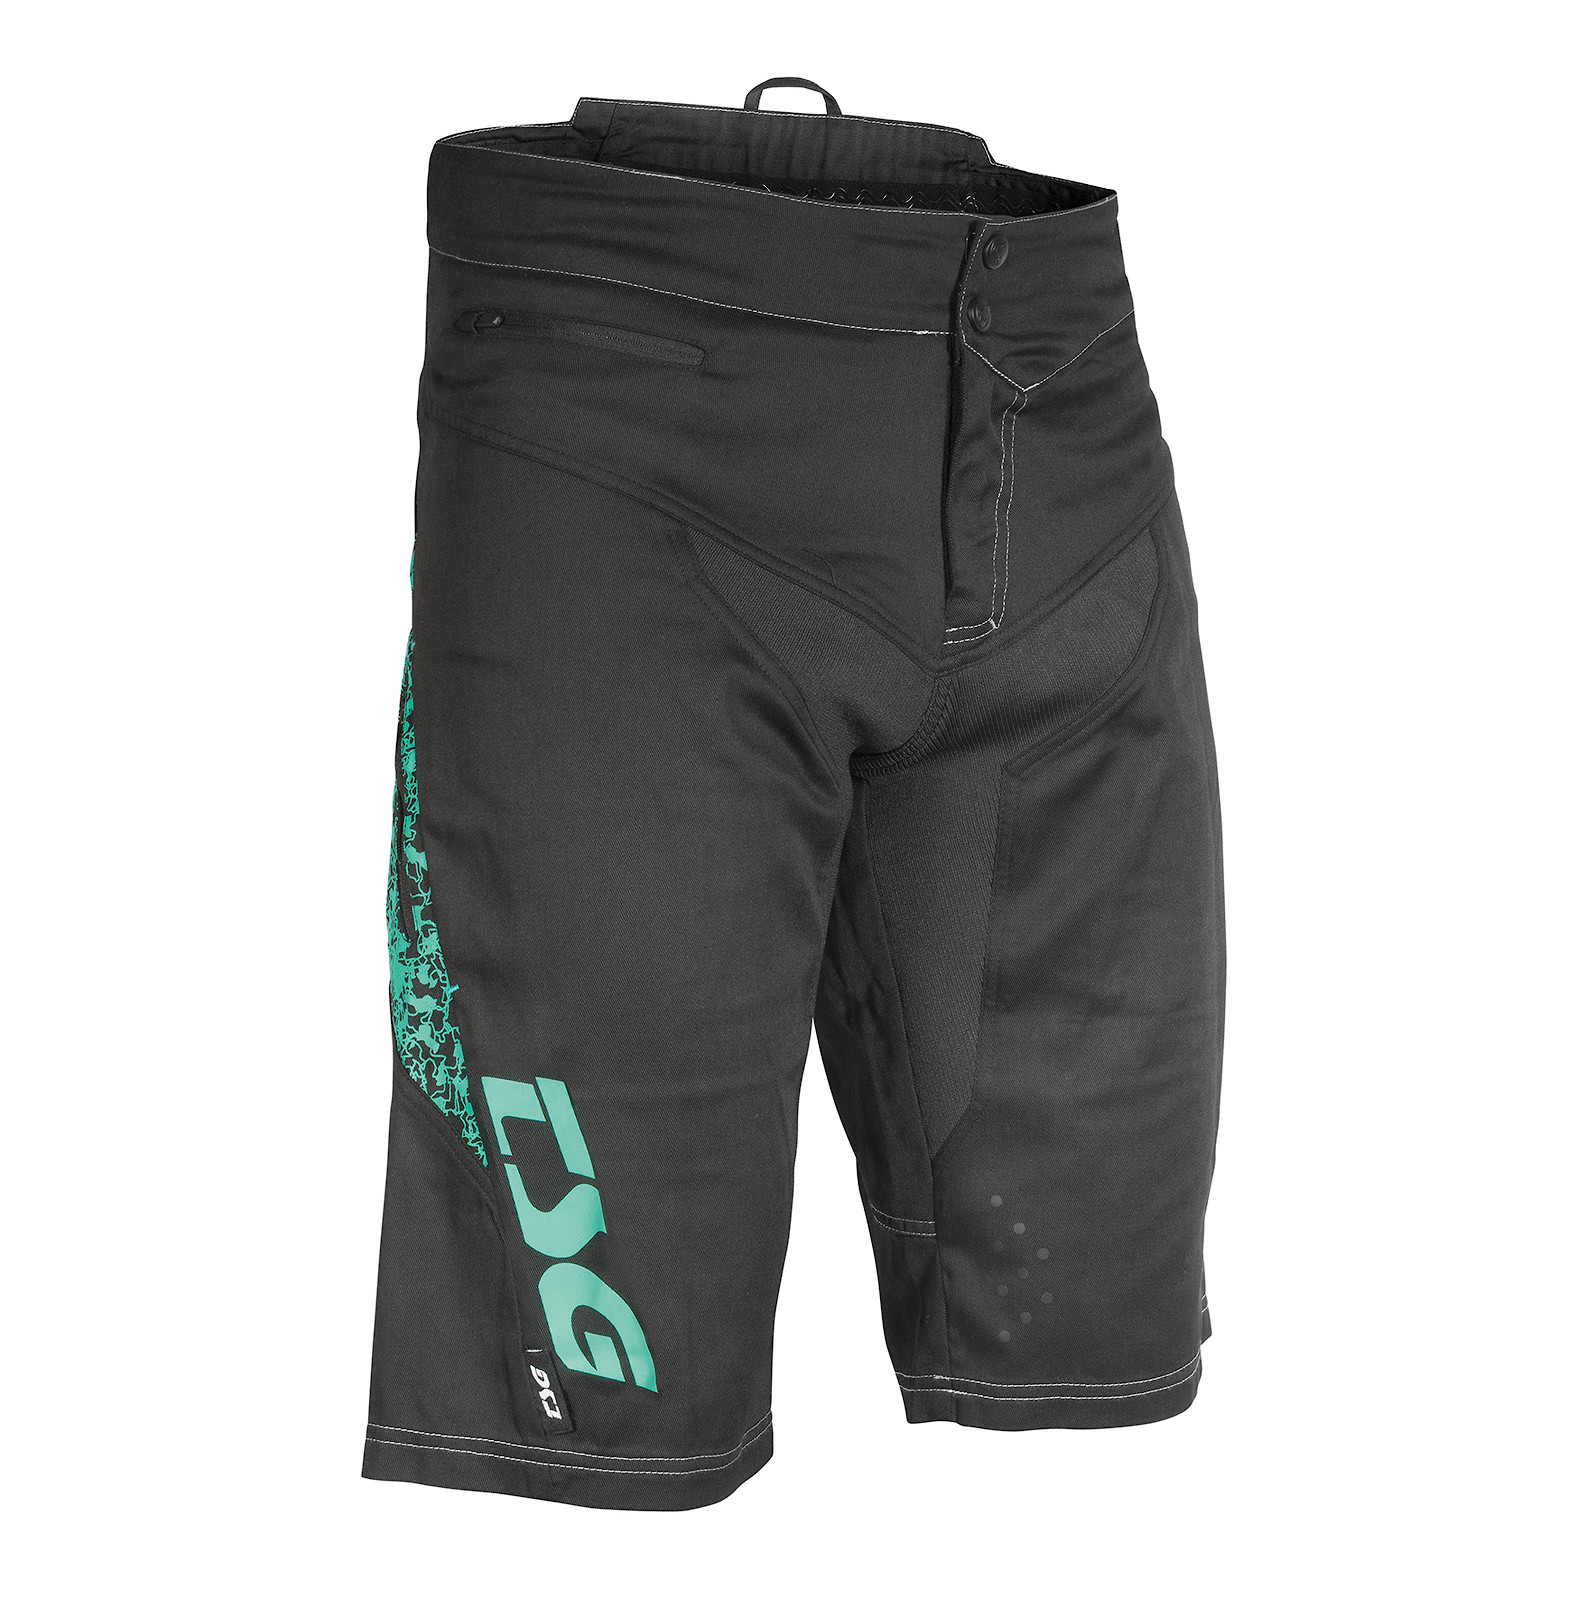 TSG MJ2 Bike Shorts Black-Turqouise